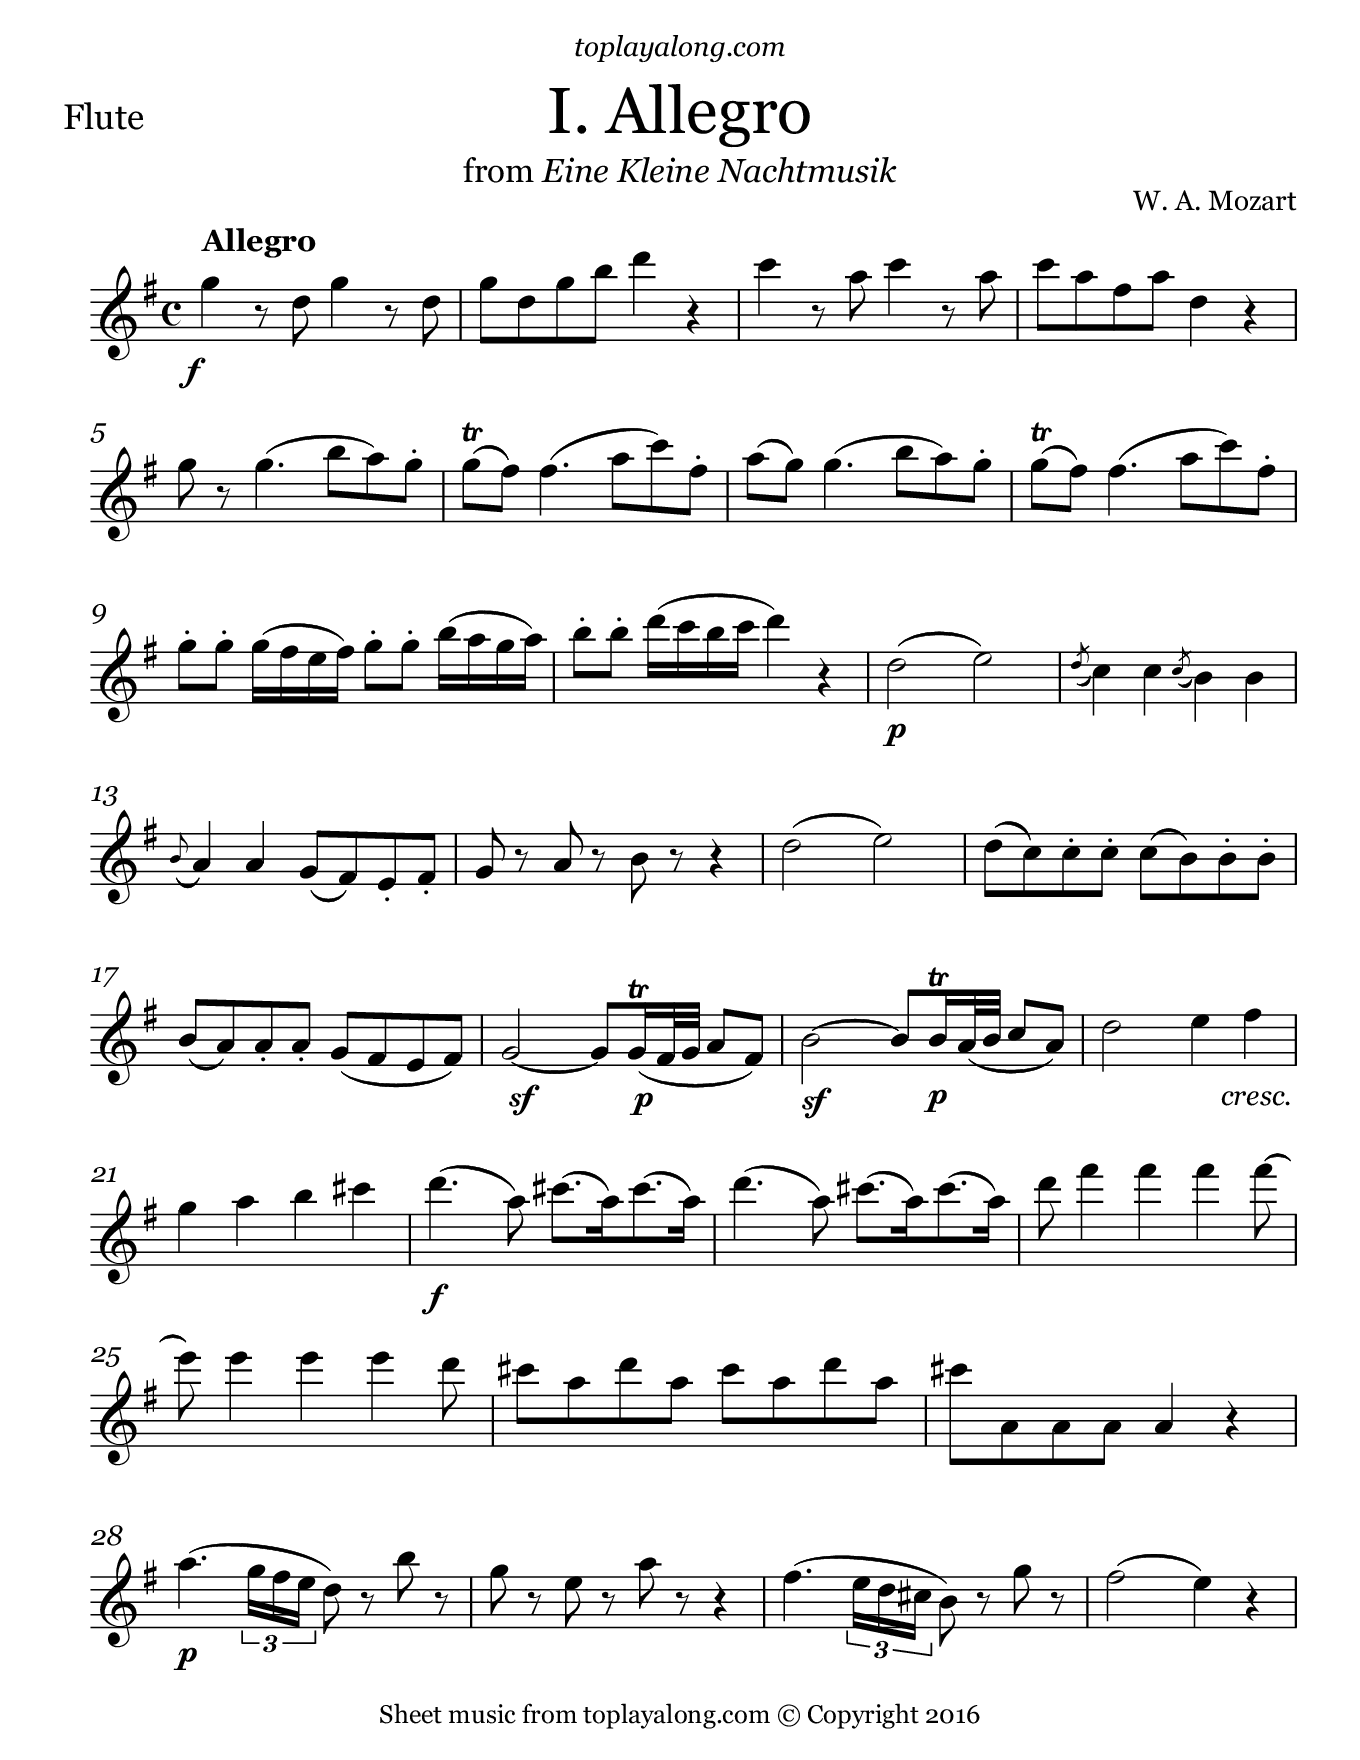 image relating to Printable Flute Sheet Music identify Eine Kleine Nachtmusik (I. Allegro)